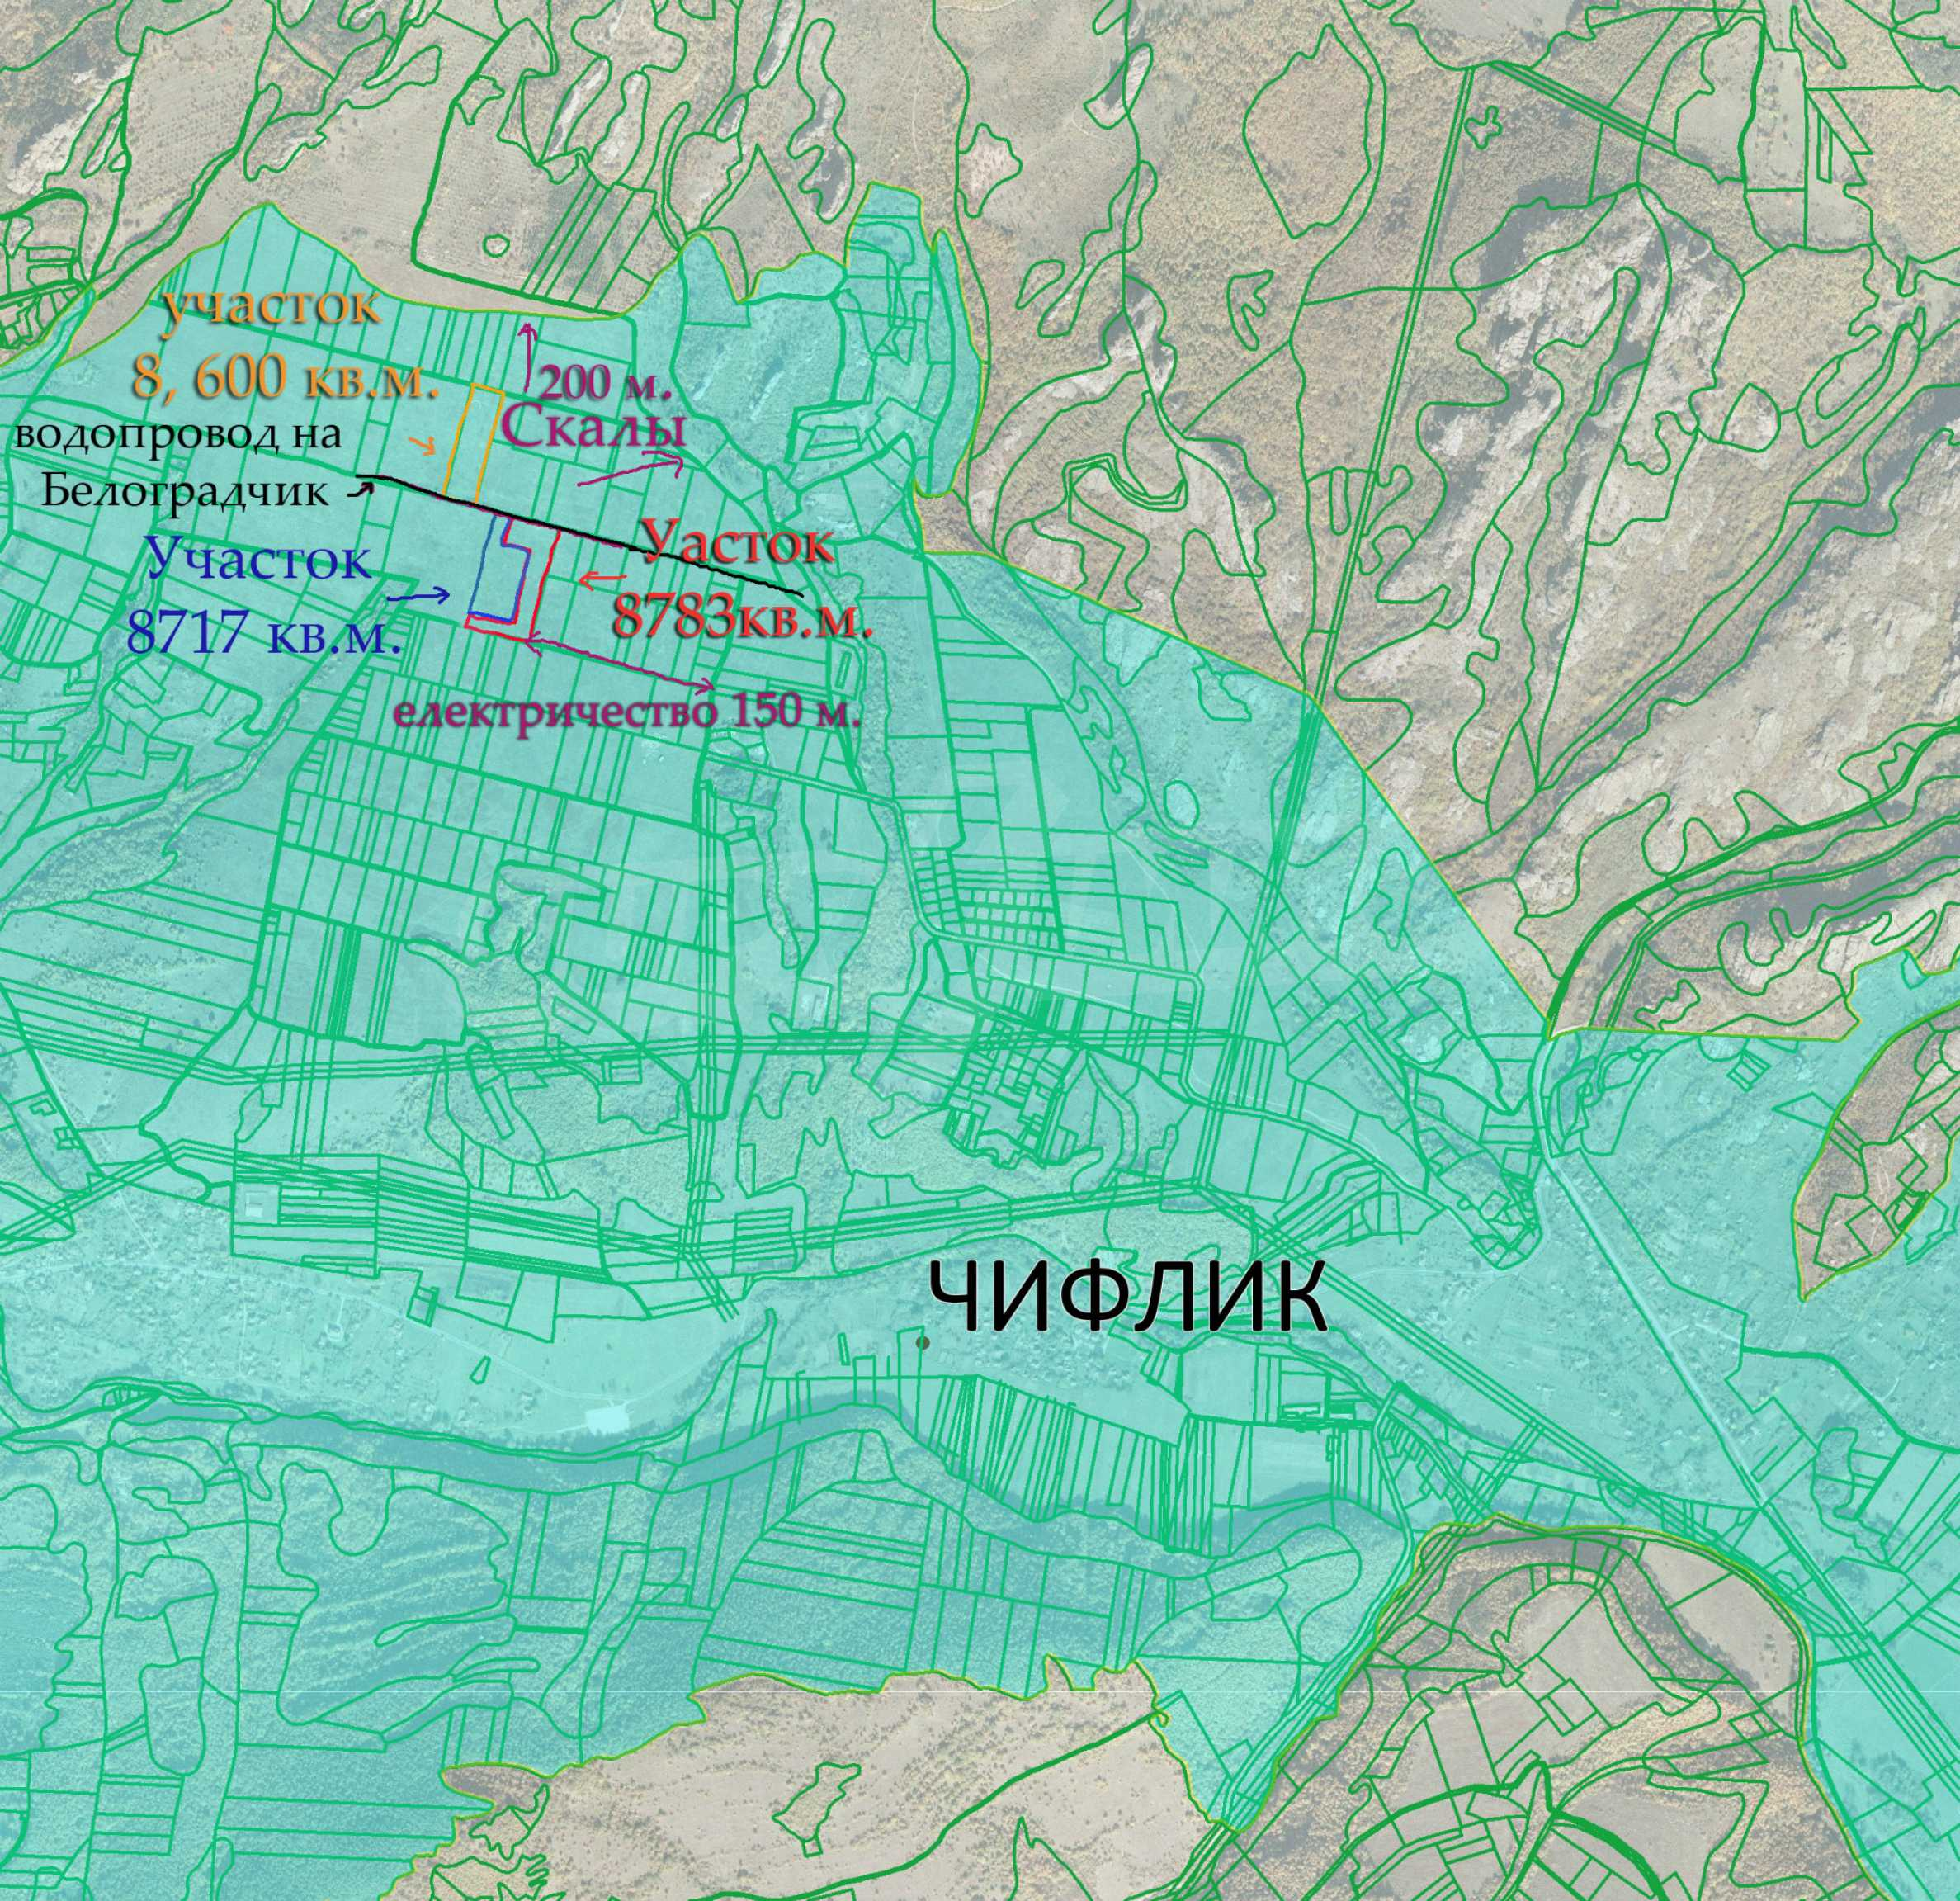 Regulated plot of land with project by the Belogradchik rocks 3